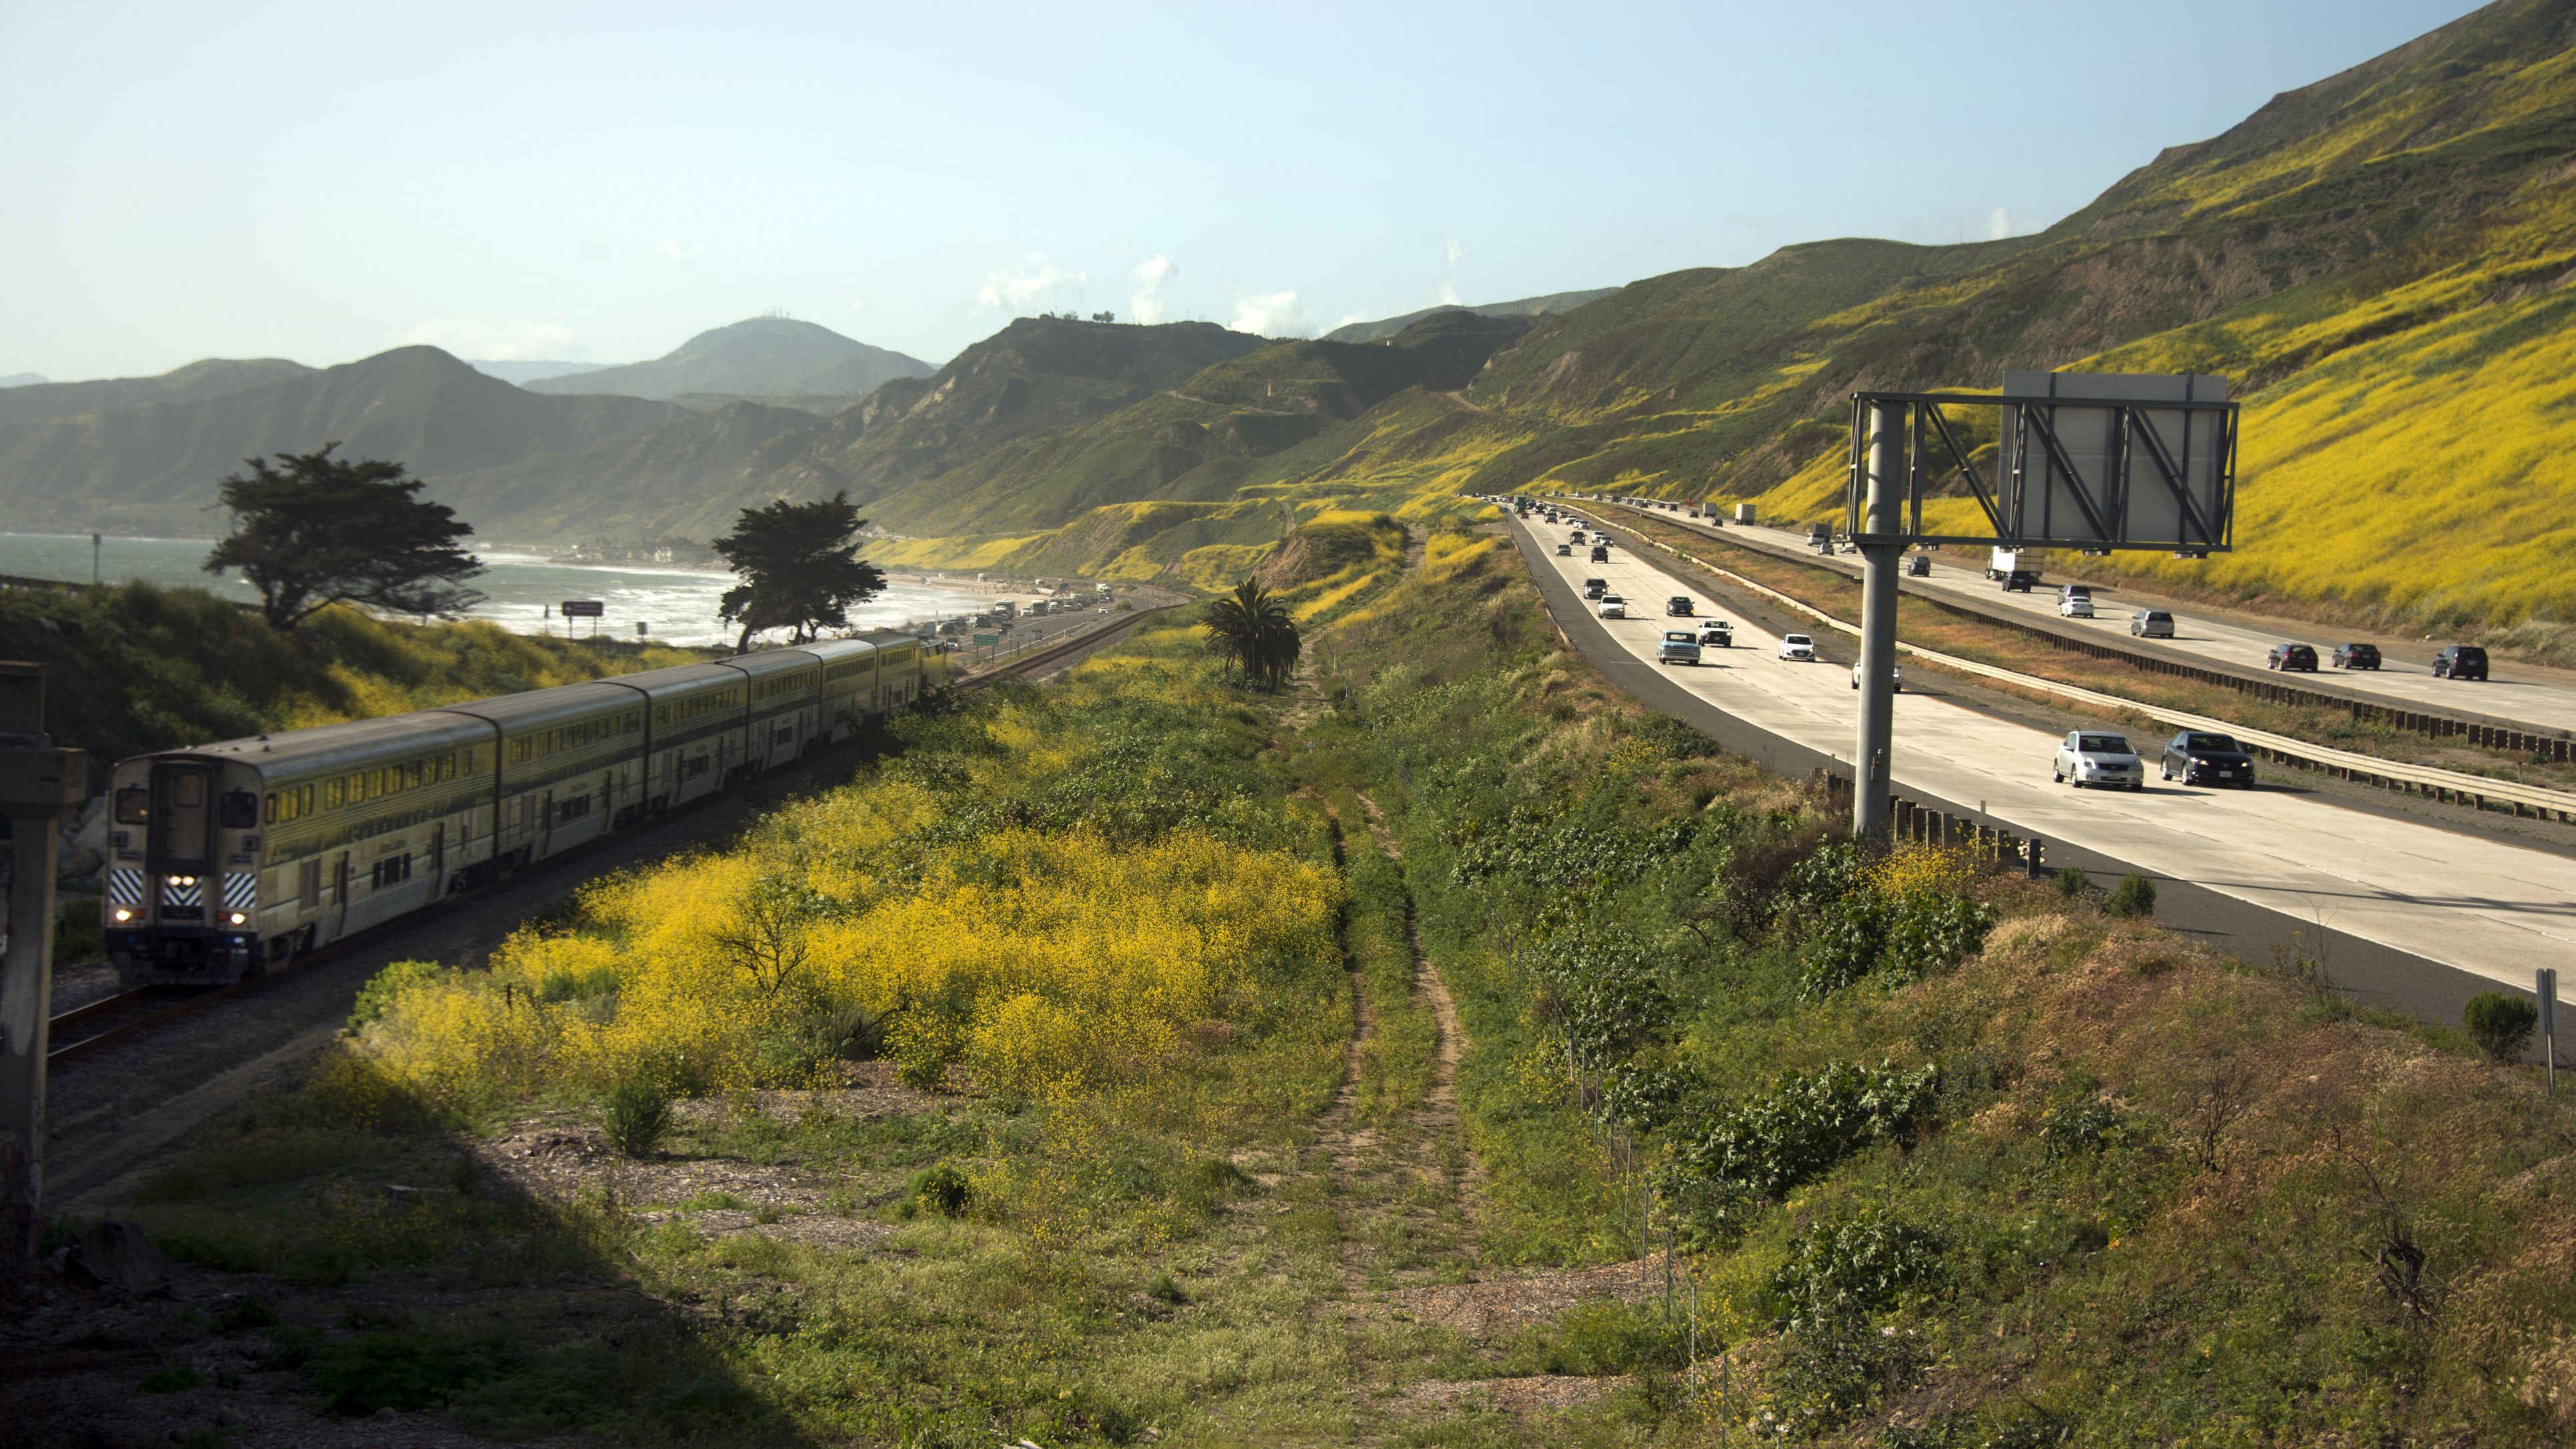 Los Angeles to San Francisco on US Highway 101